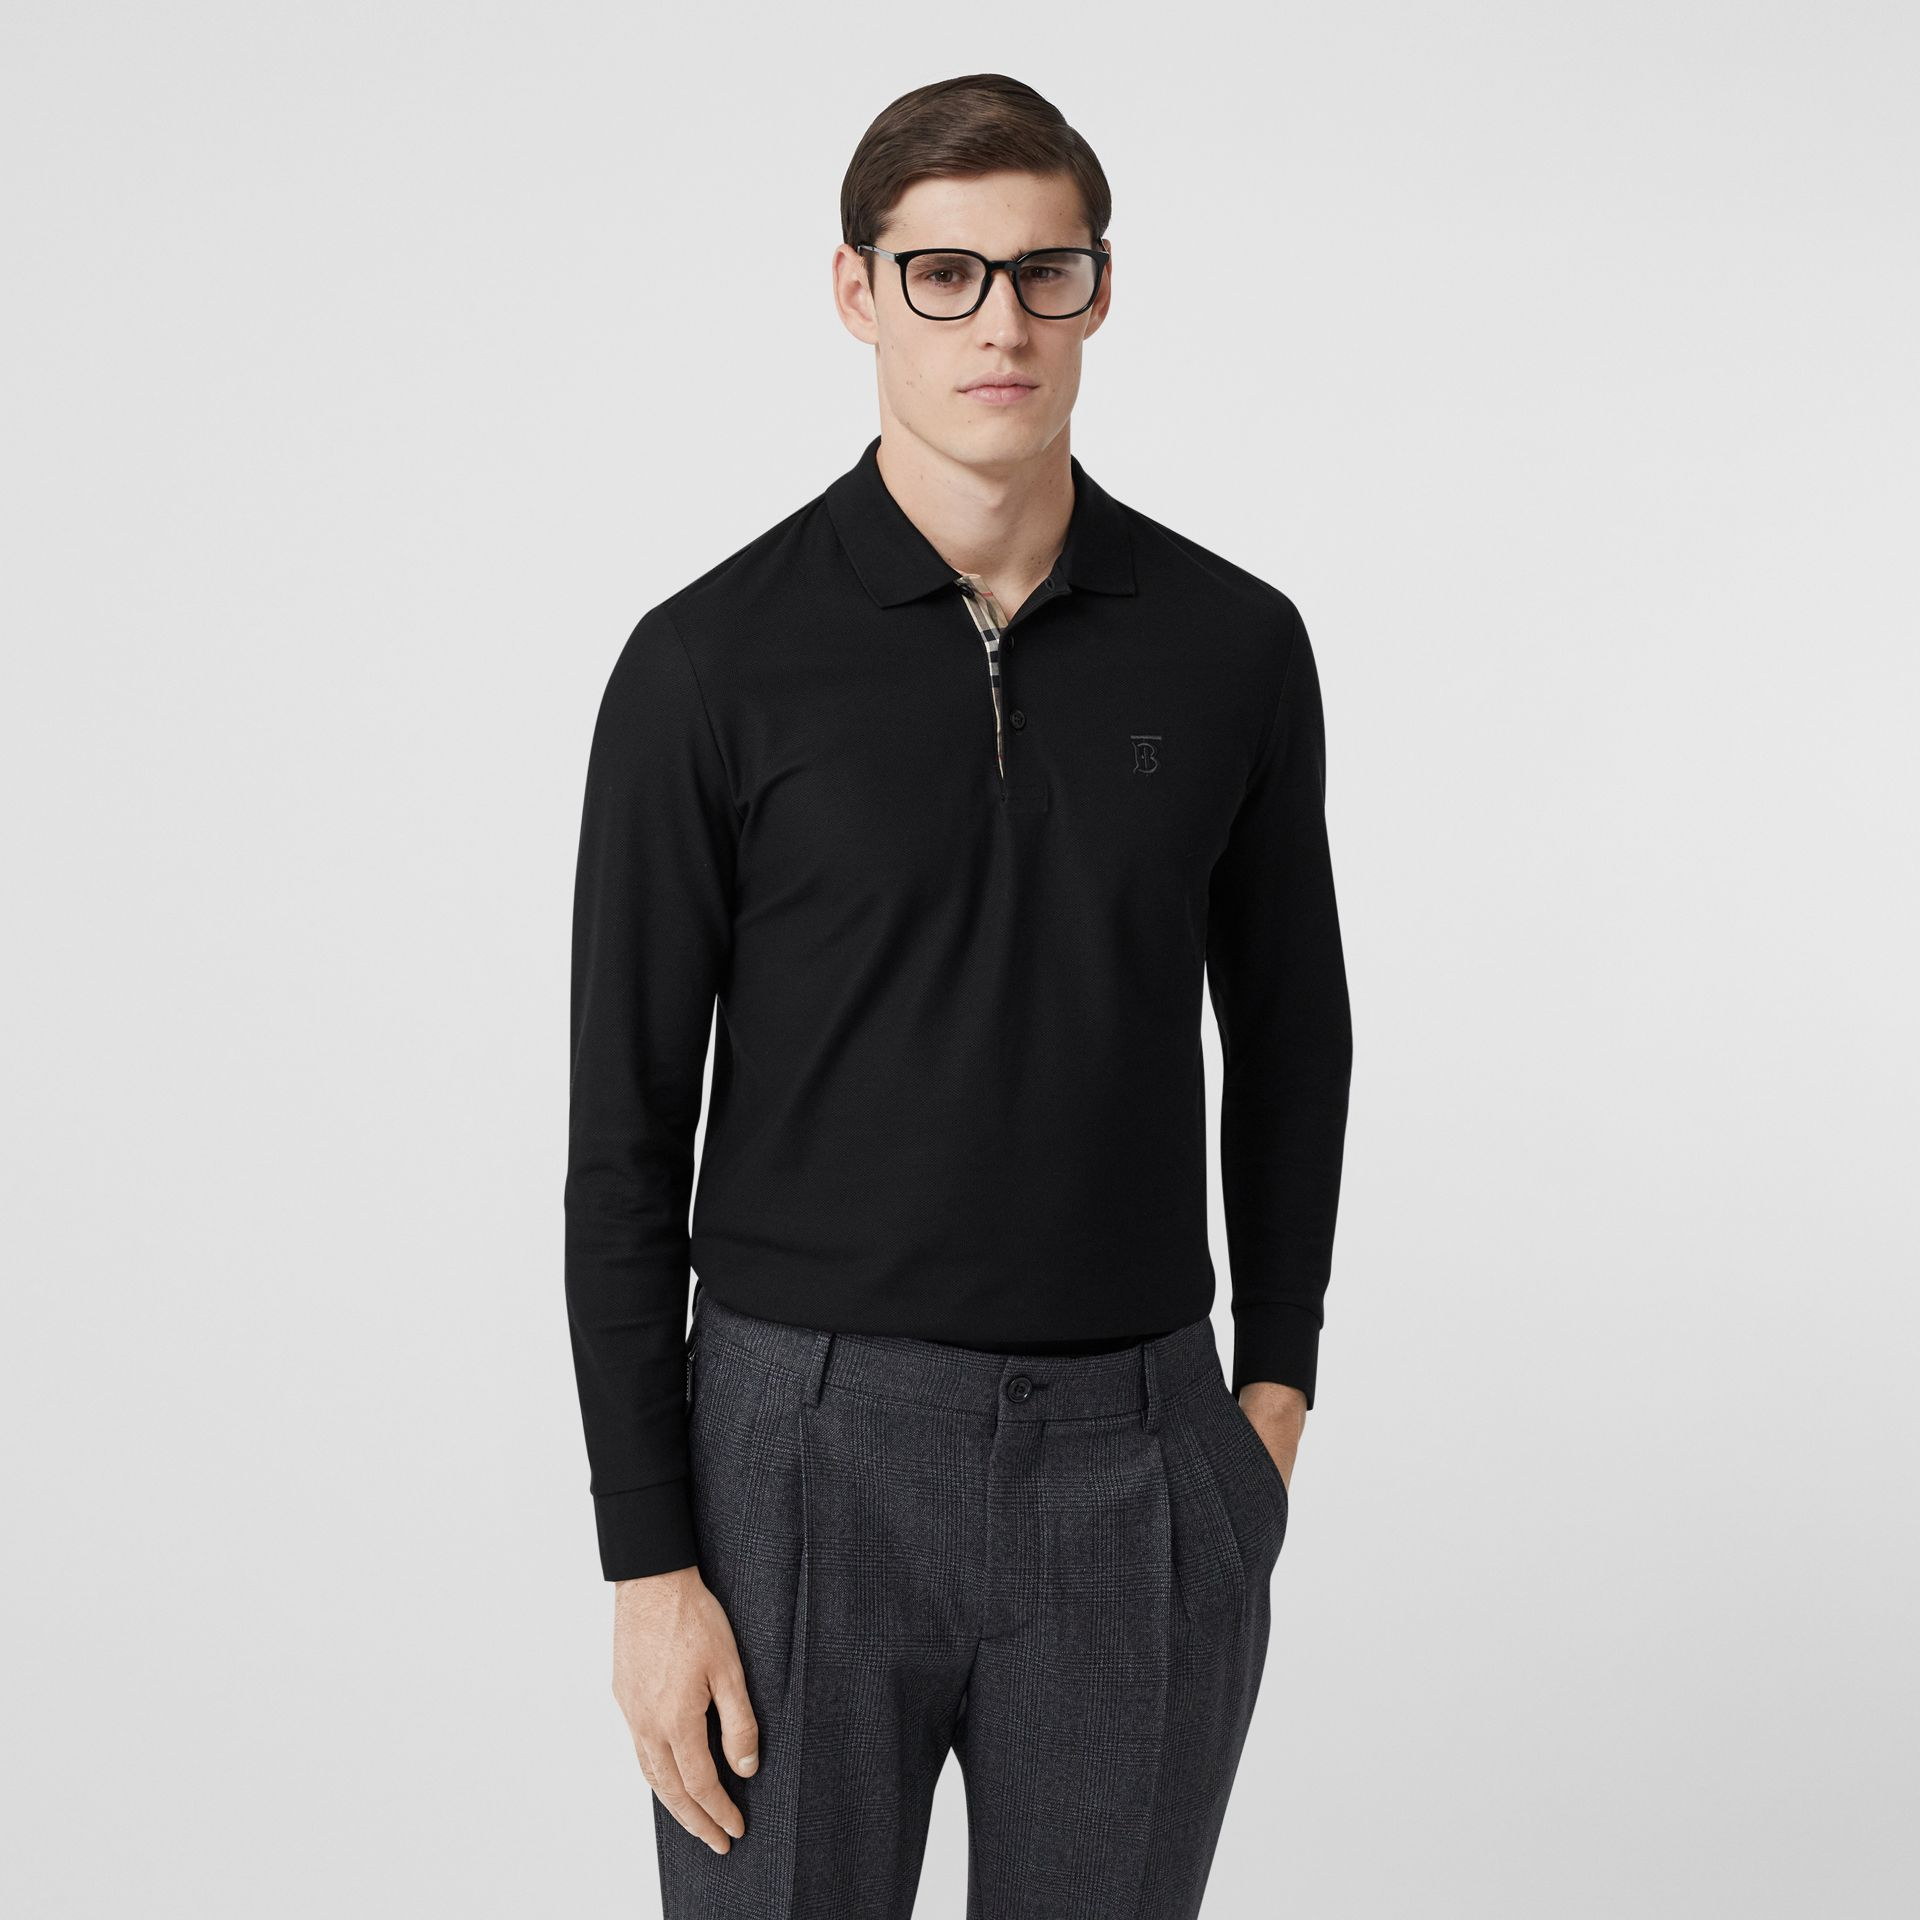 Long-sleeve Monogram Motif Cotton Piqué Polo Shirt in Black - Men | Burberry - gallery image 5